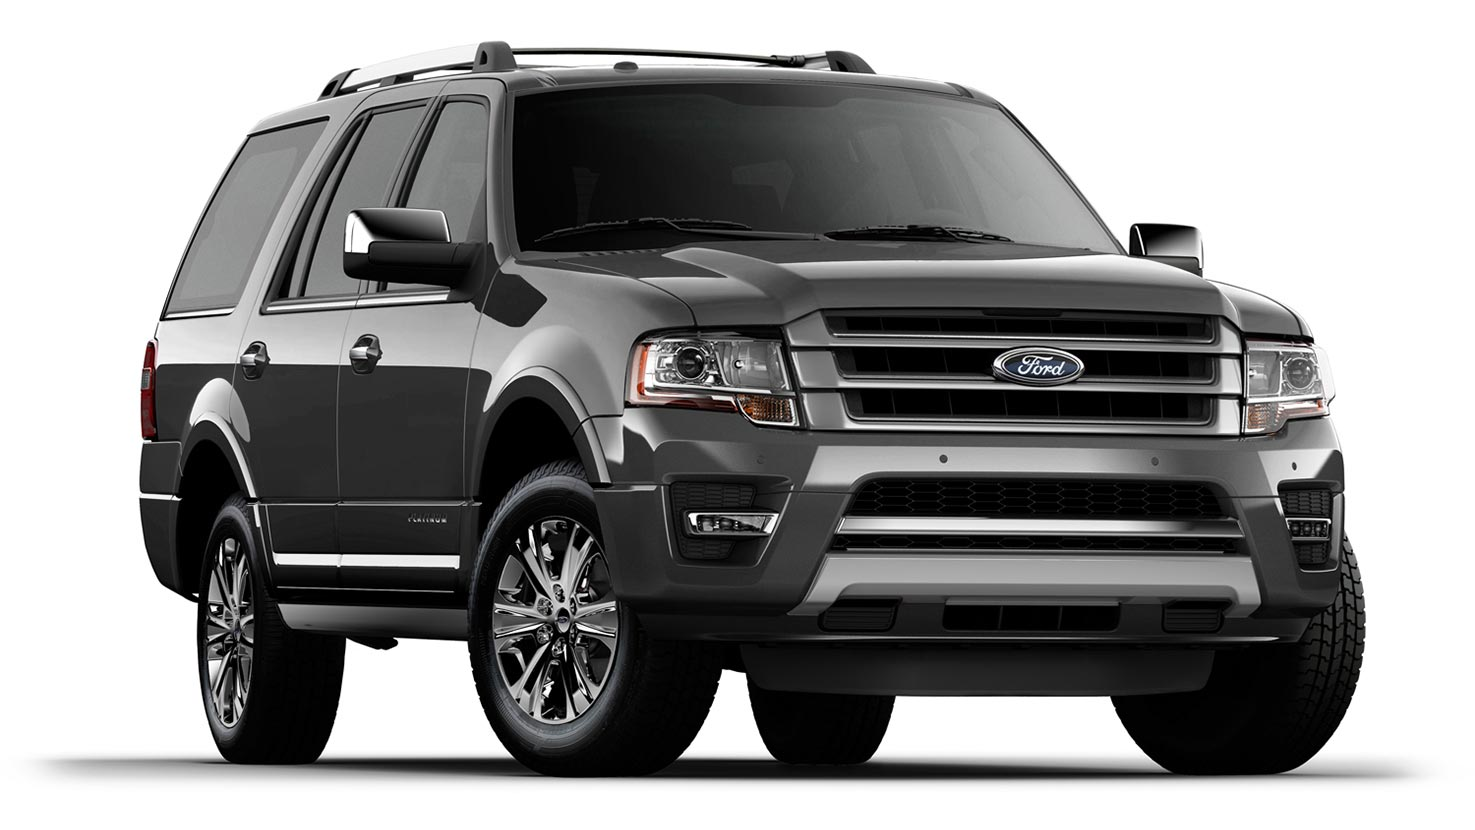 2015 ford expedition review msrp mpg. Black Bedroom Furniture Sets. Home Design Ideas